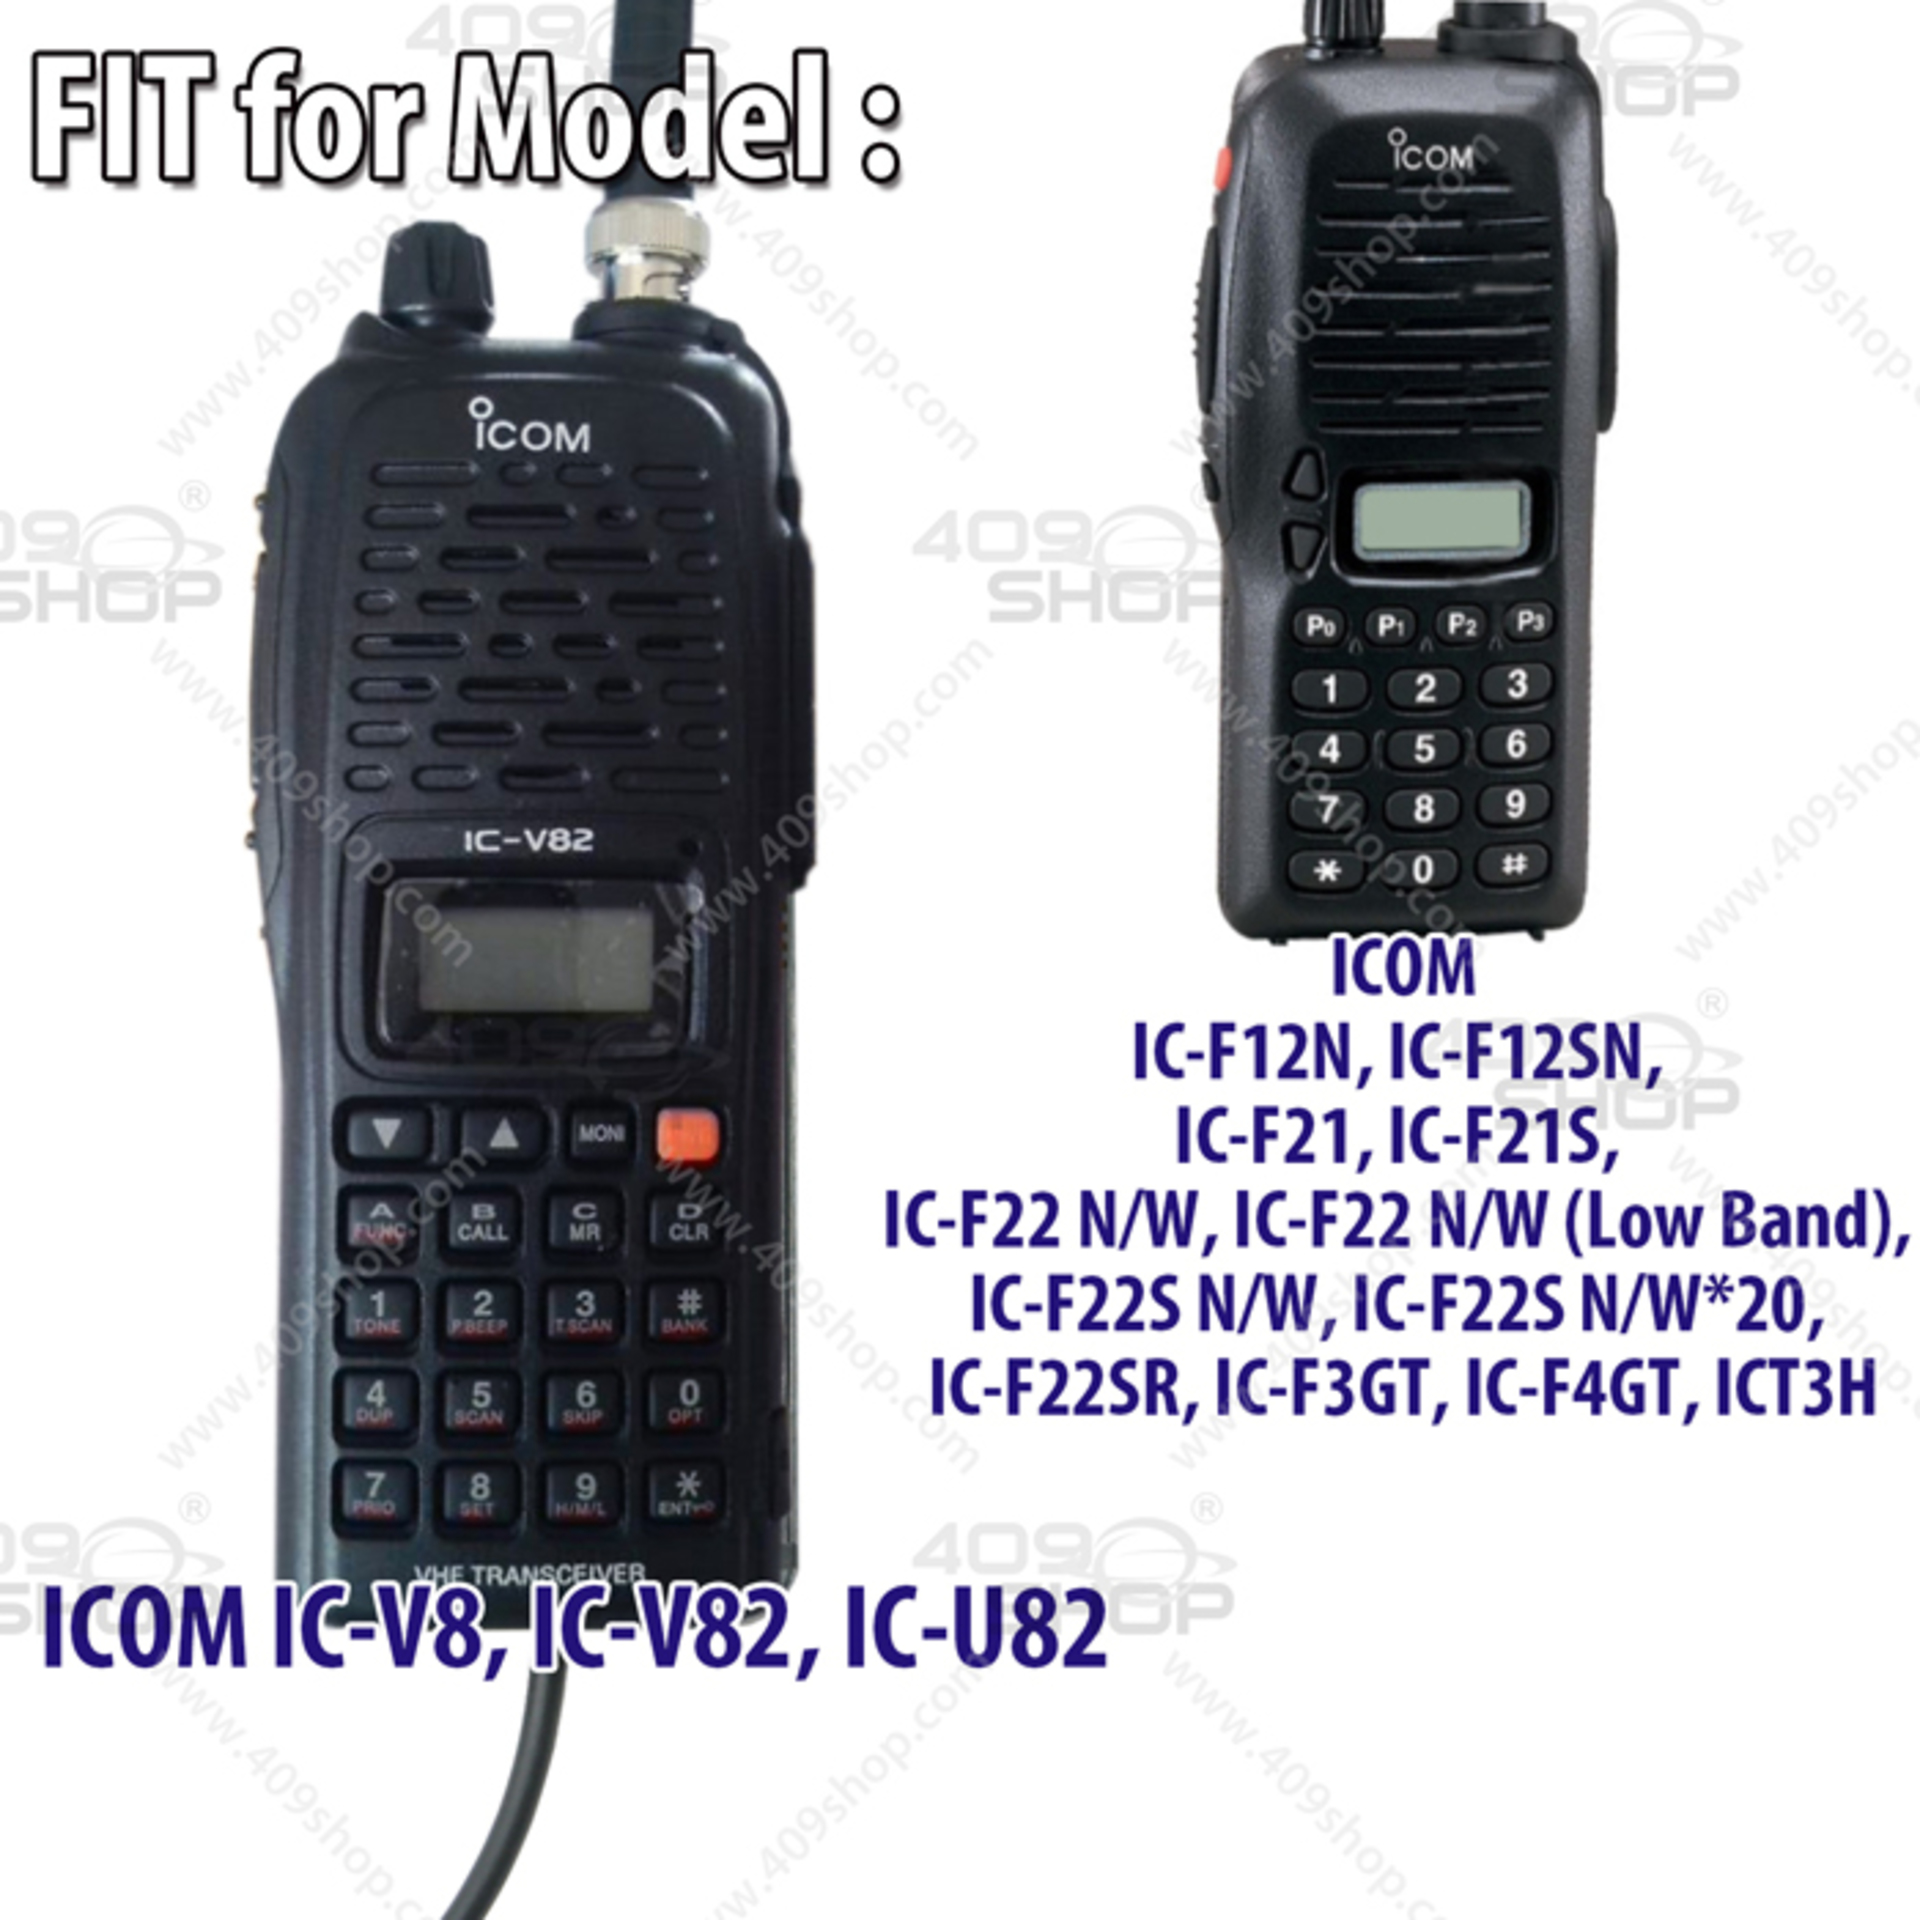 software for the icom ic-v82